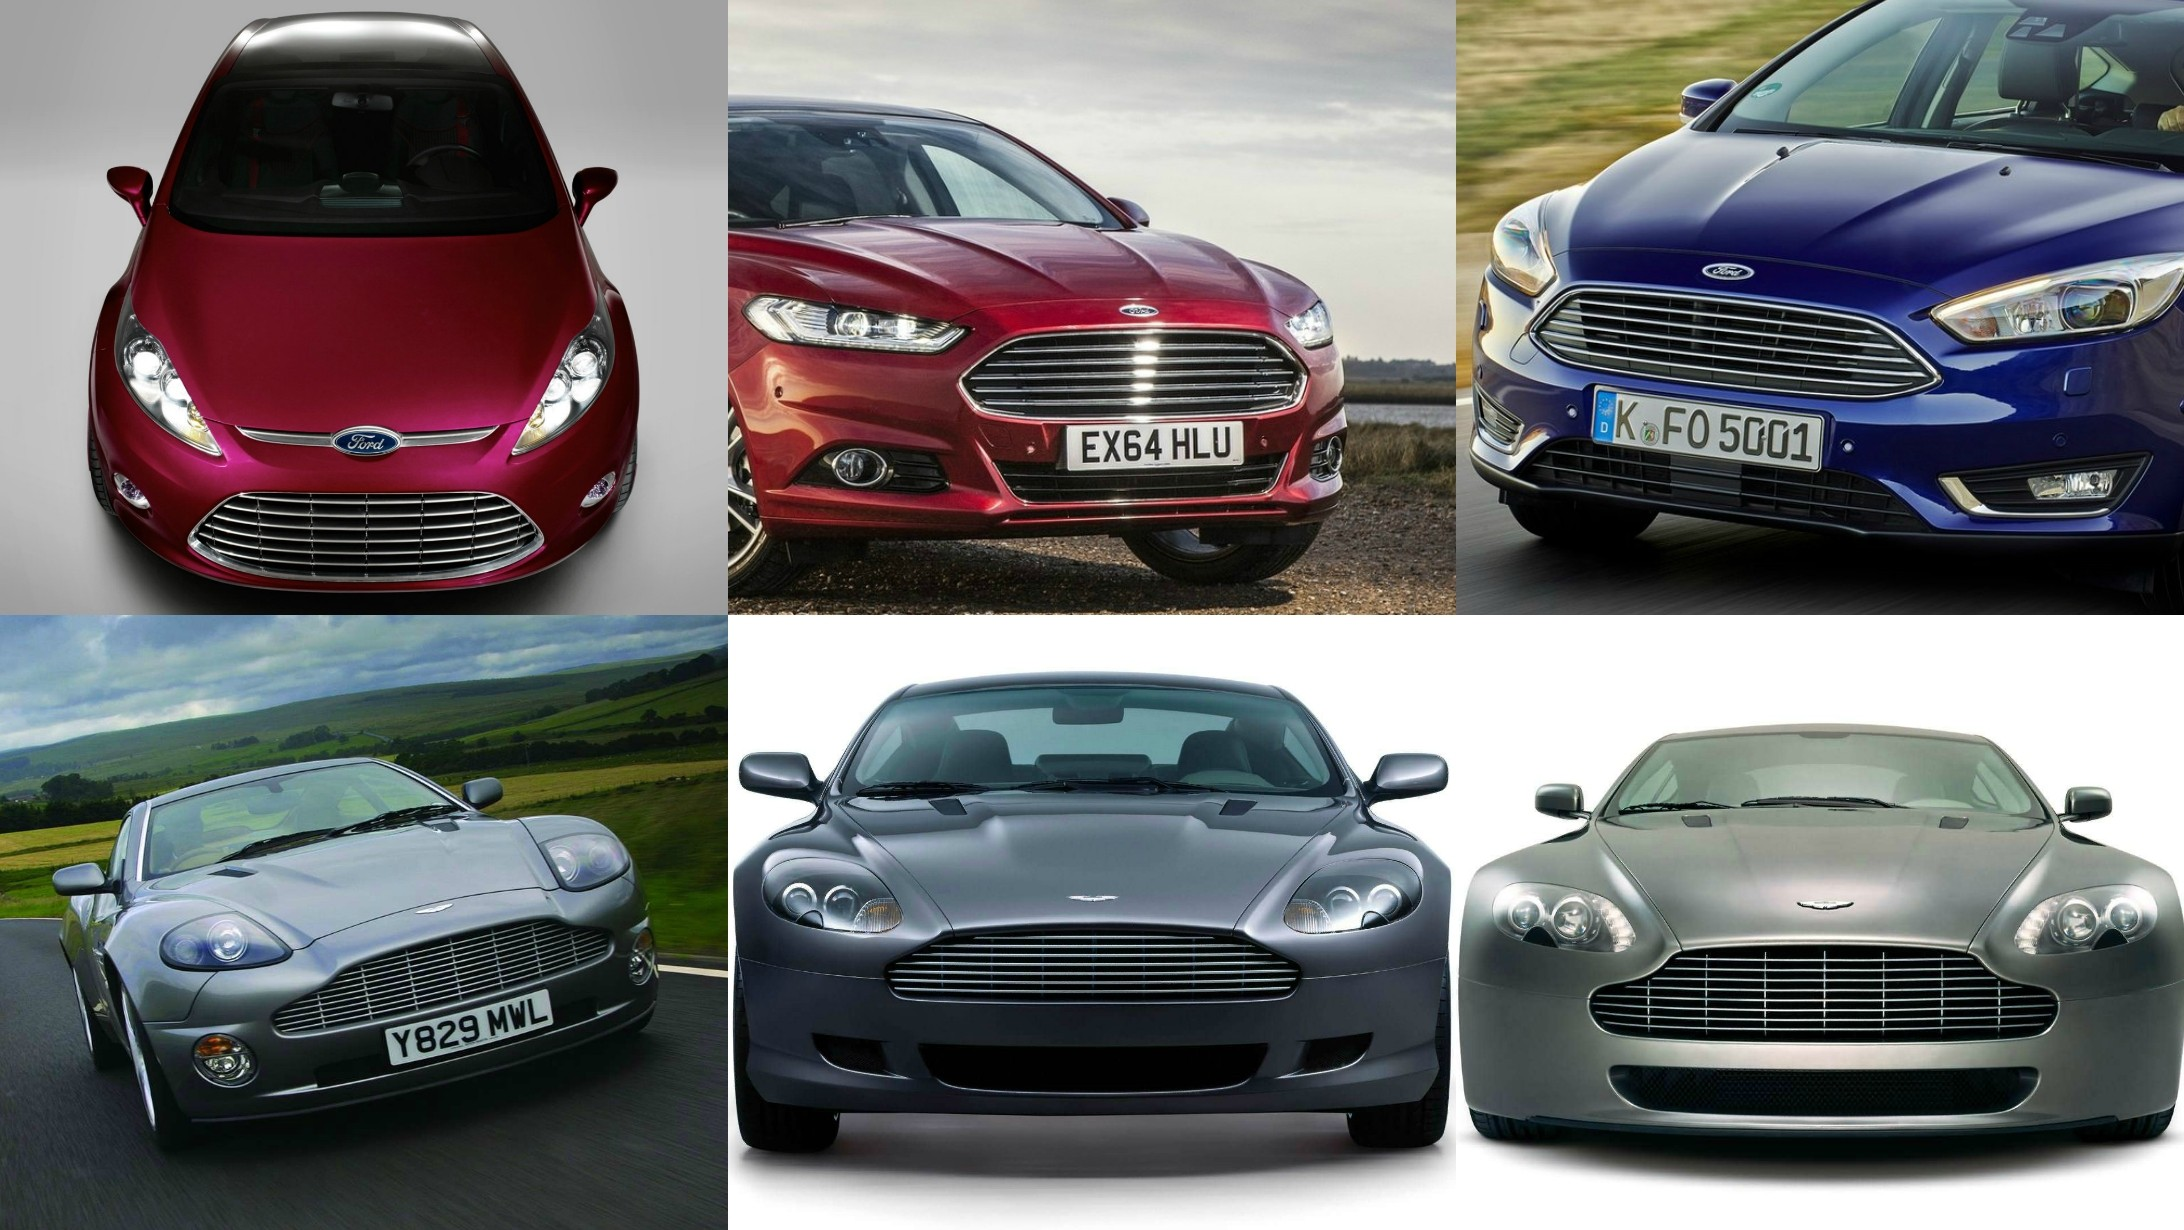 Ford Vs Aston Martin Front Grille Designs